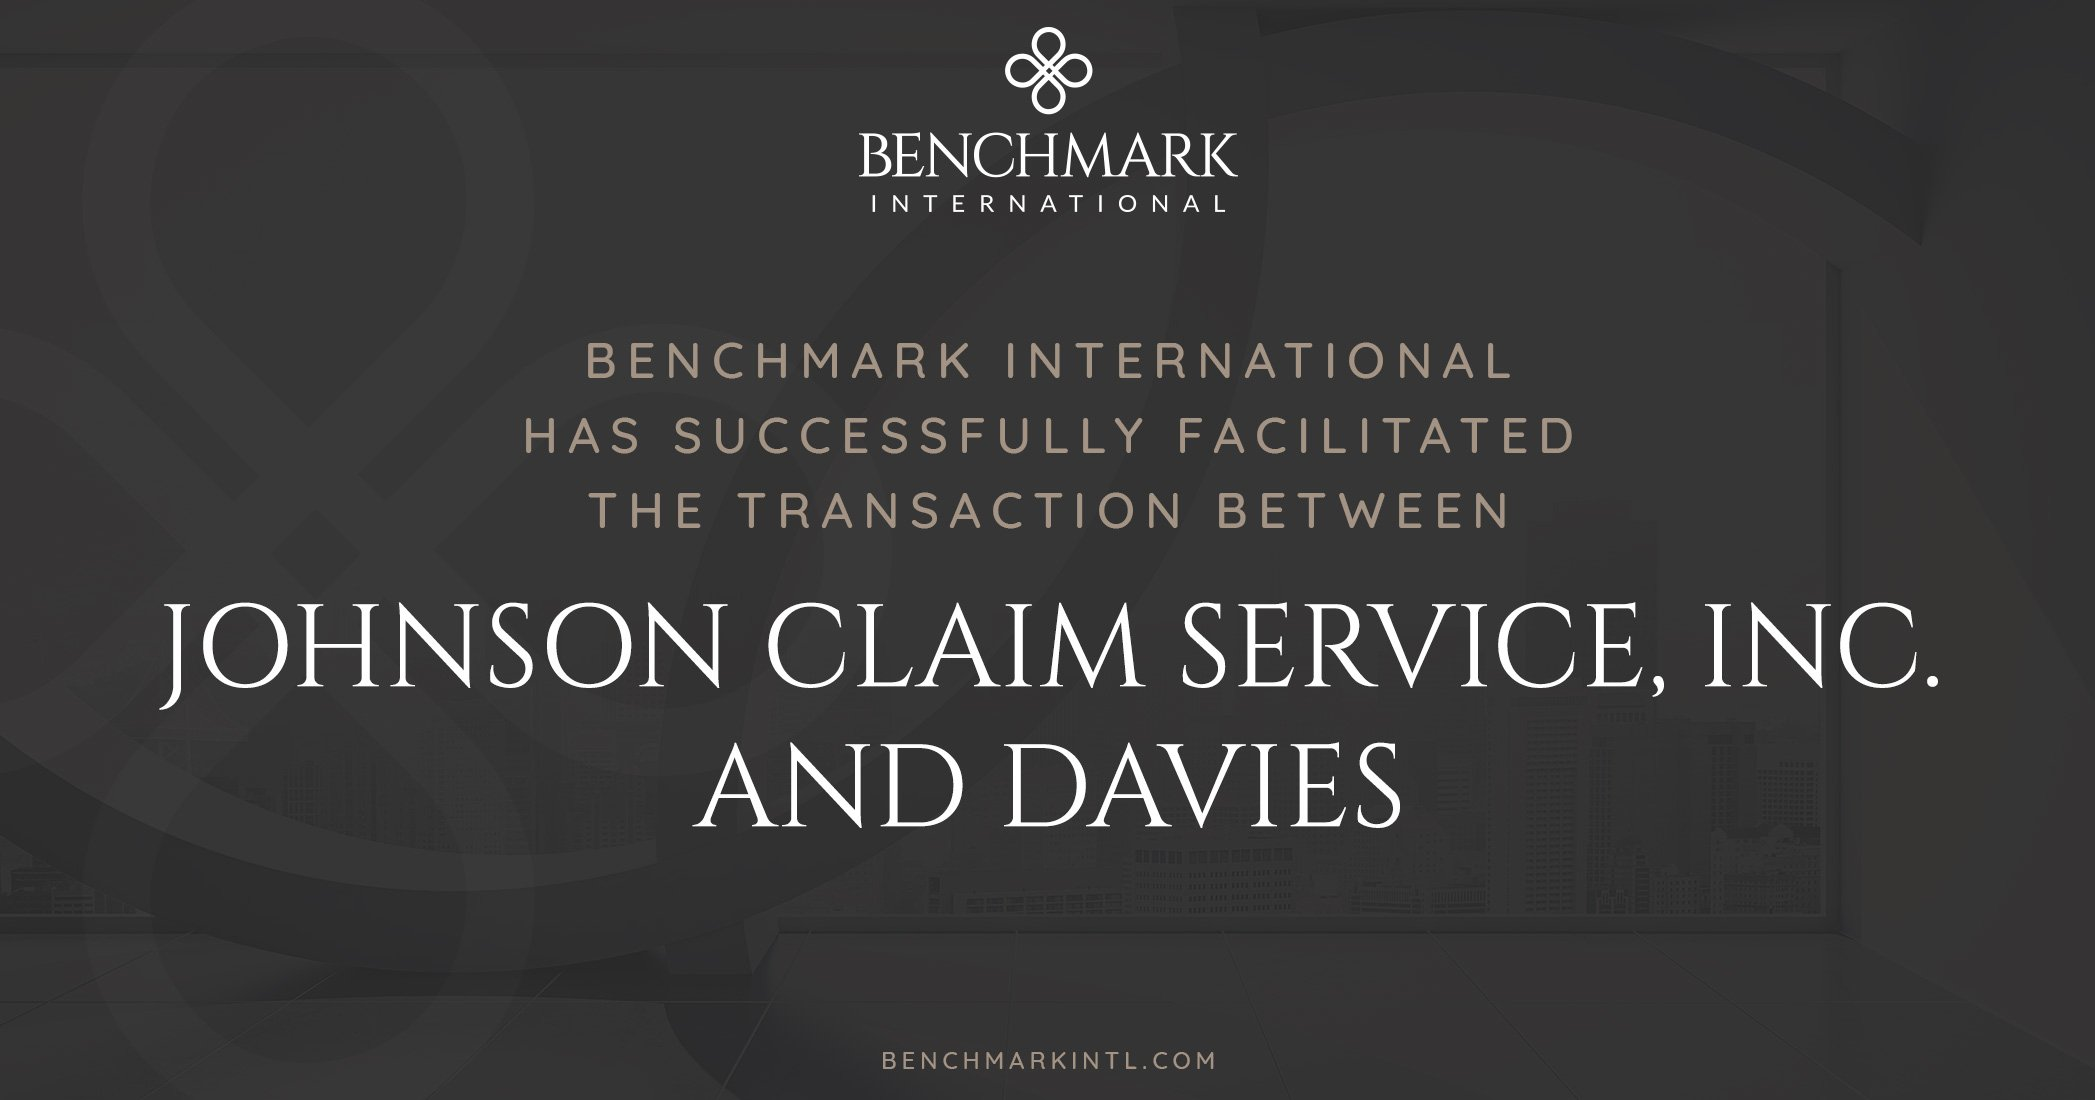 Benchmark International Successfully Facilitated the Transaction Between Johnson Claim Service, Inc. and Davies